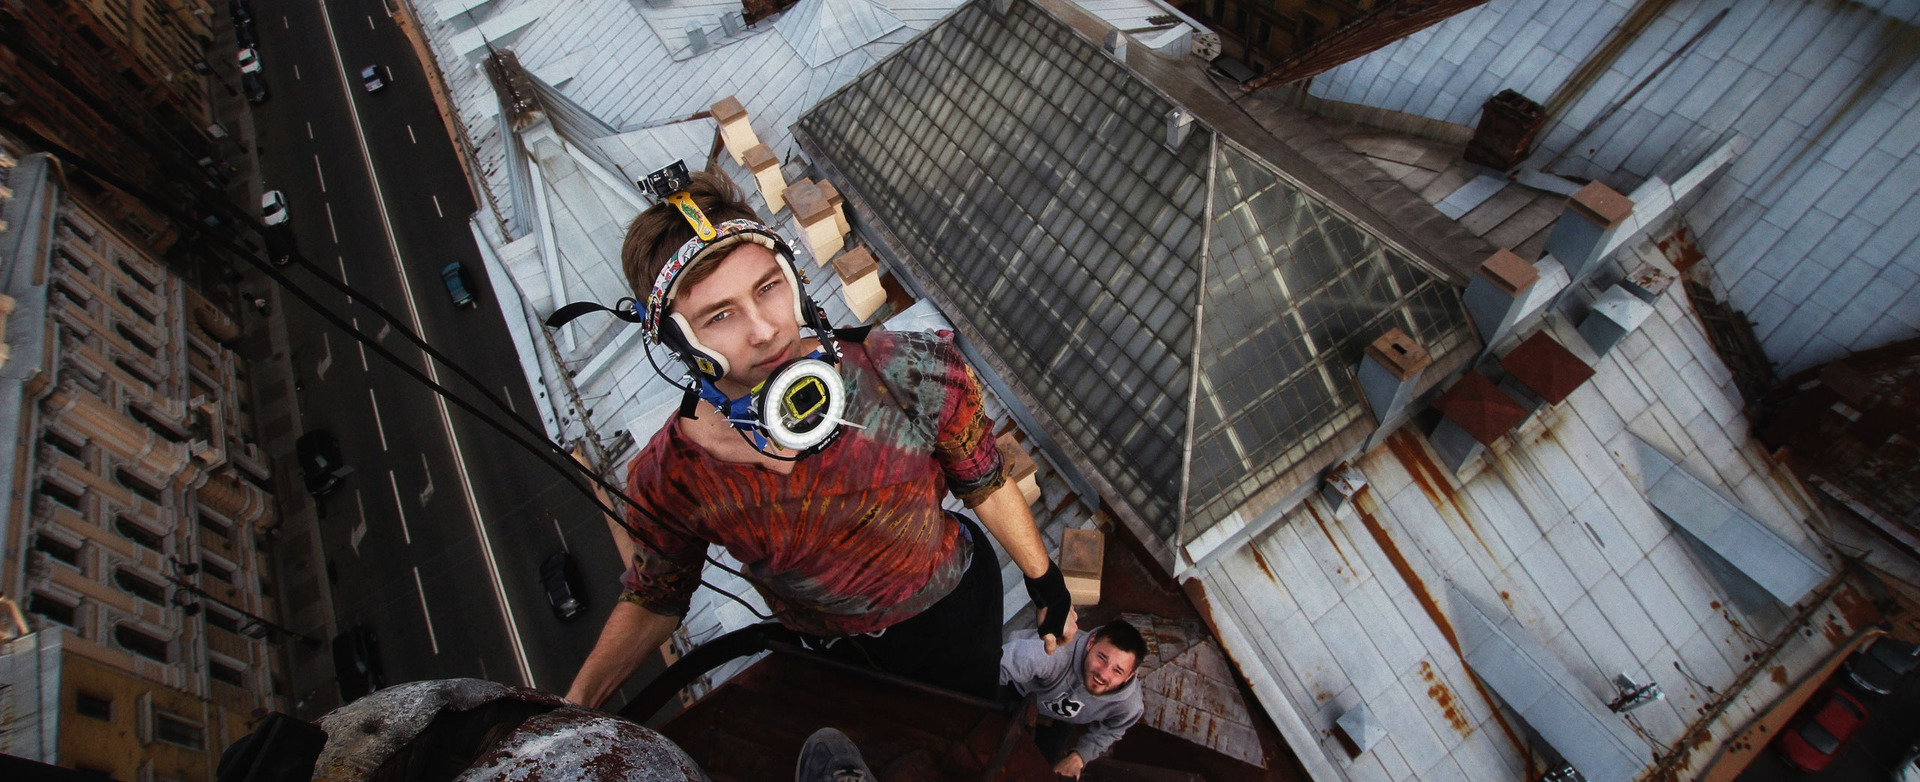 Adventure Mask As From Parkour To Come To An Innovation In Cinema